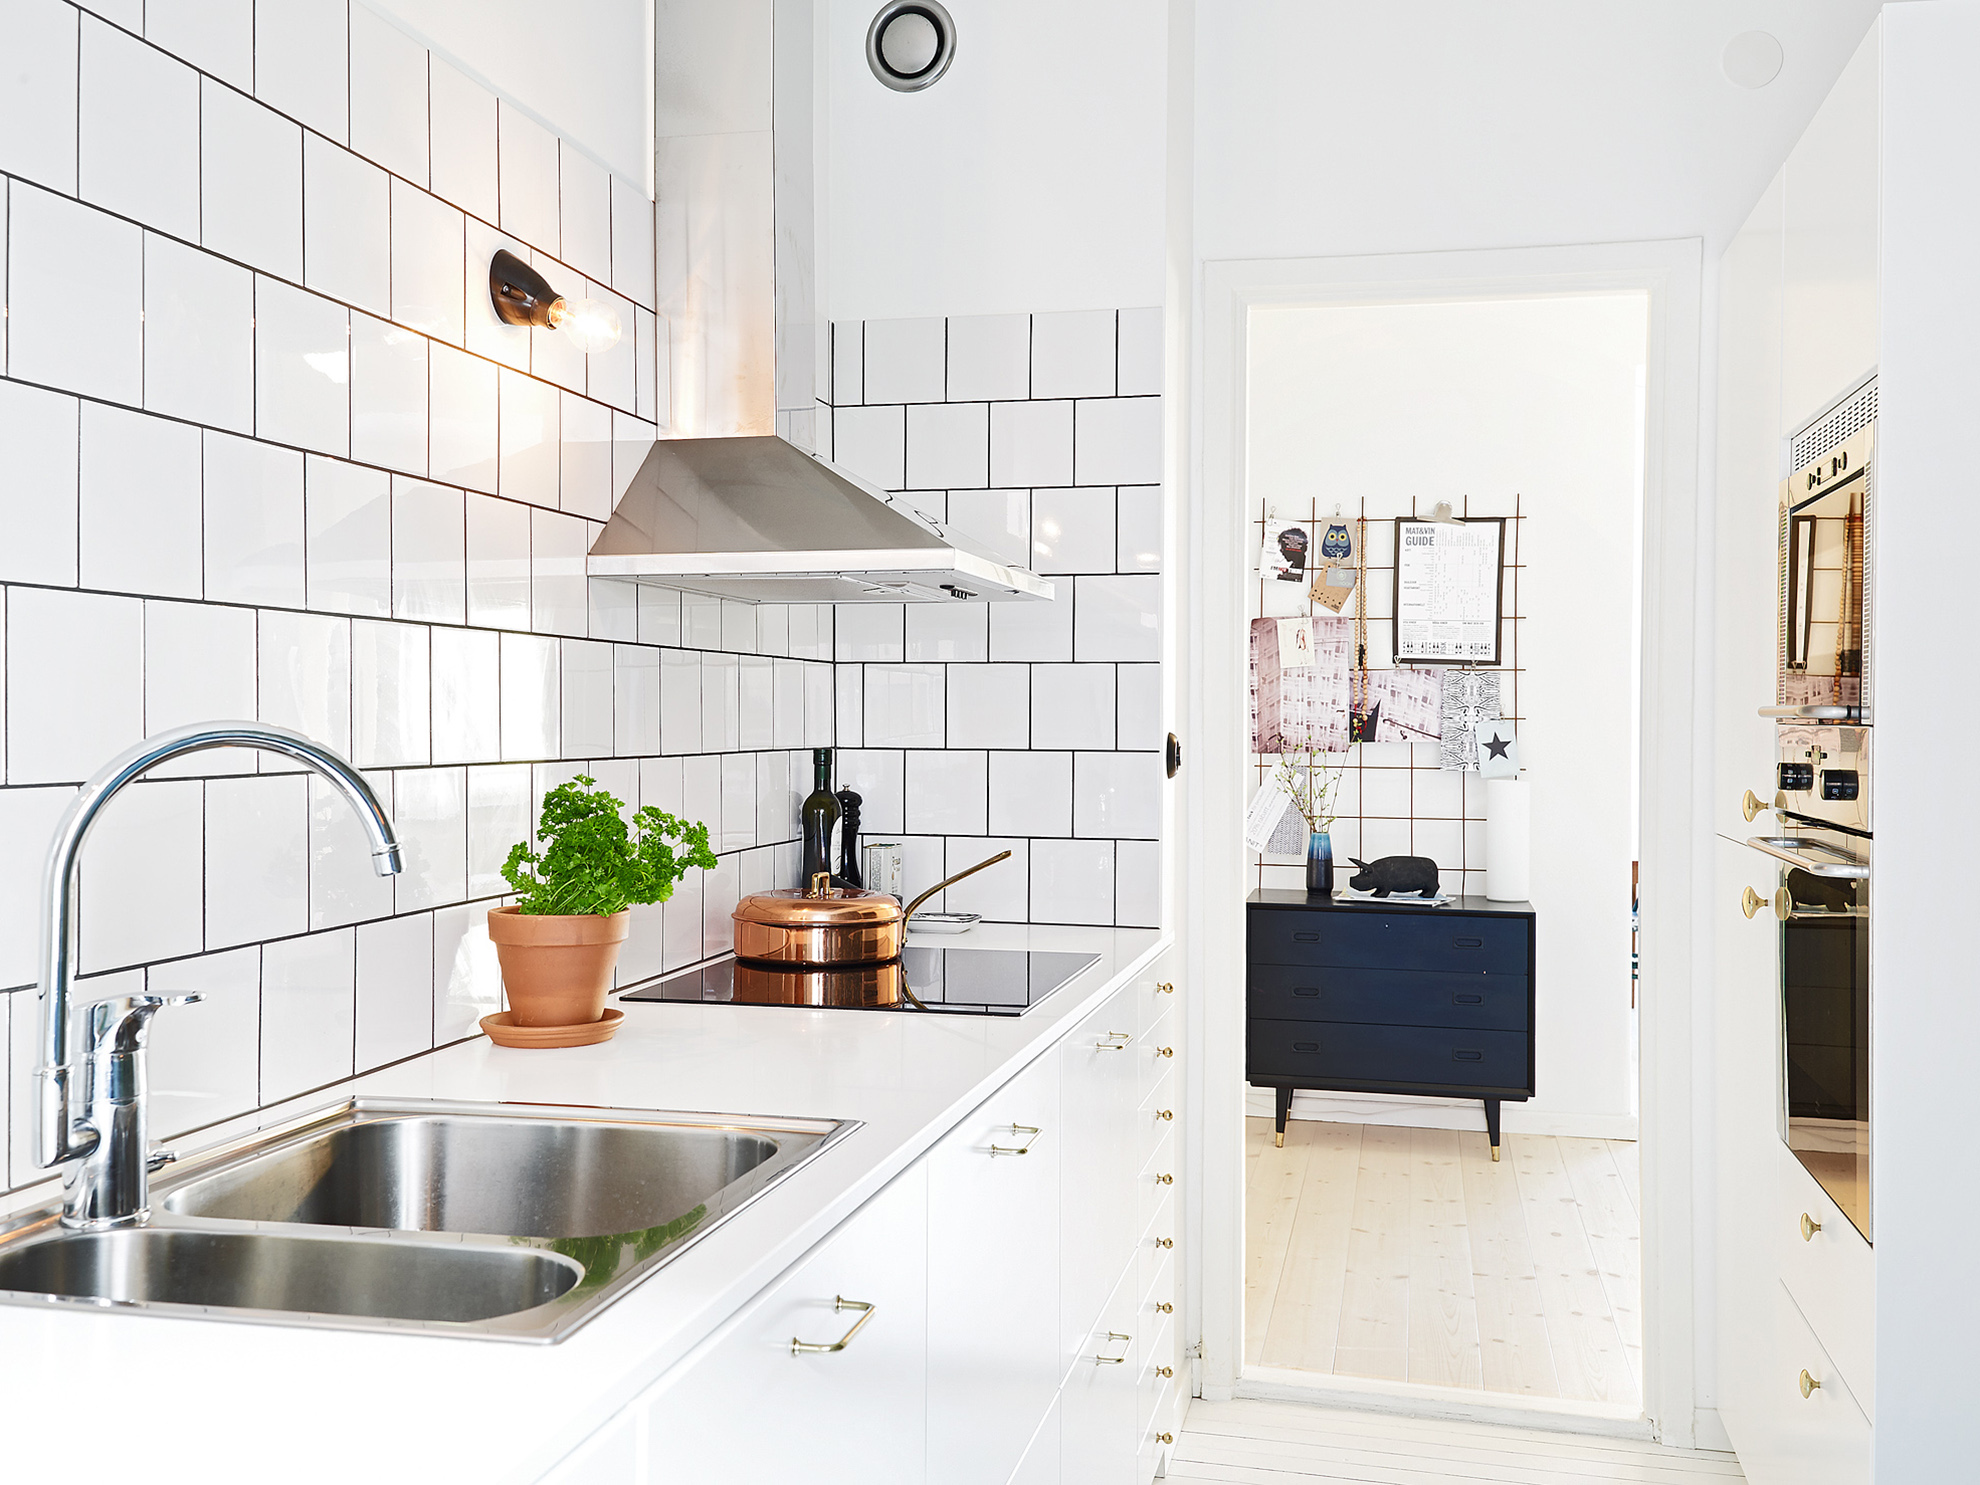 Kitchen subway tiles are back in style 50 inspiring designs by shape square tiles dailygadgetfo Choice Image